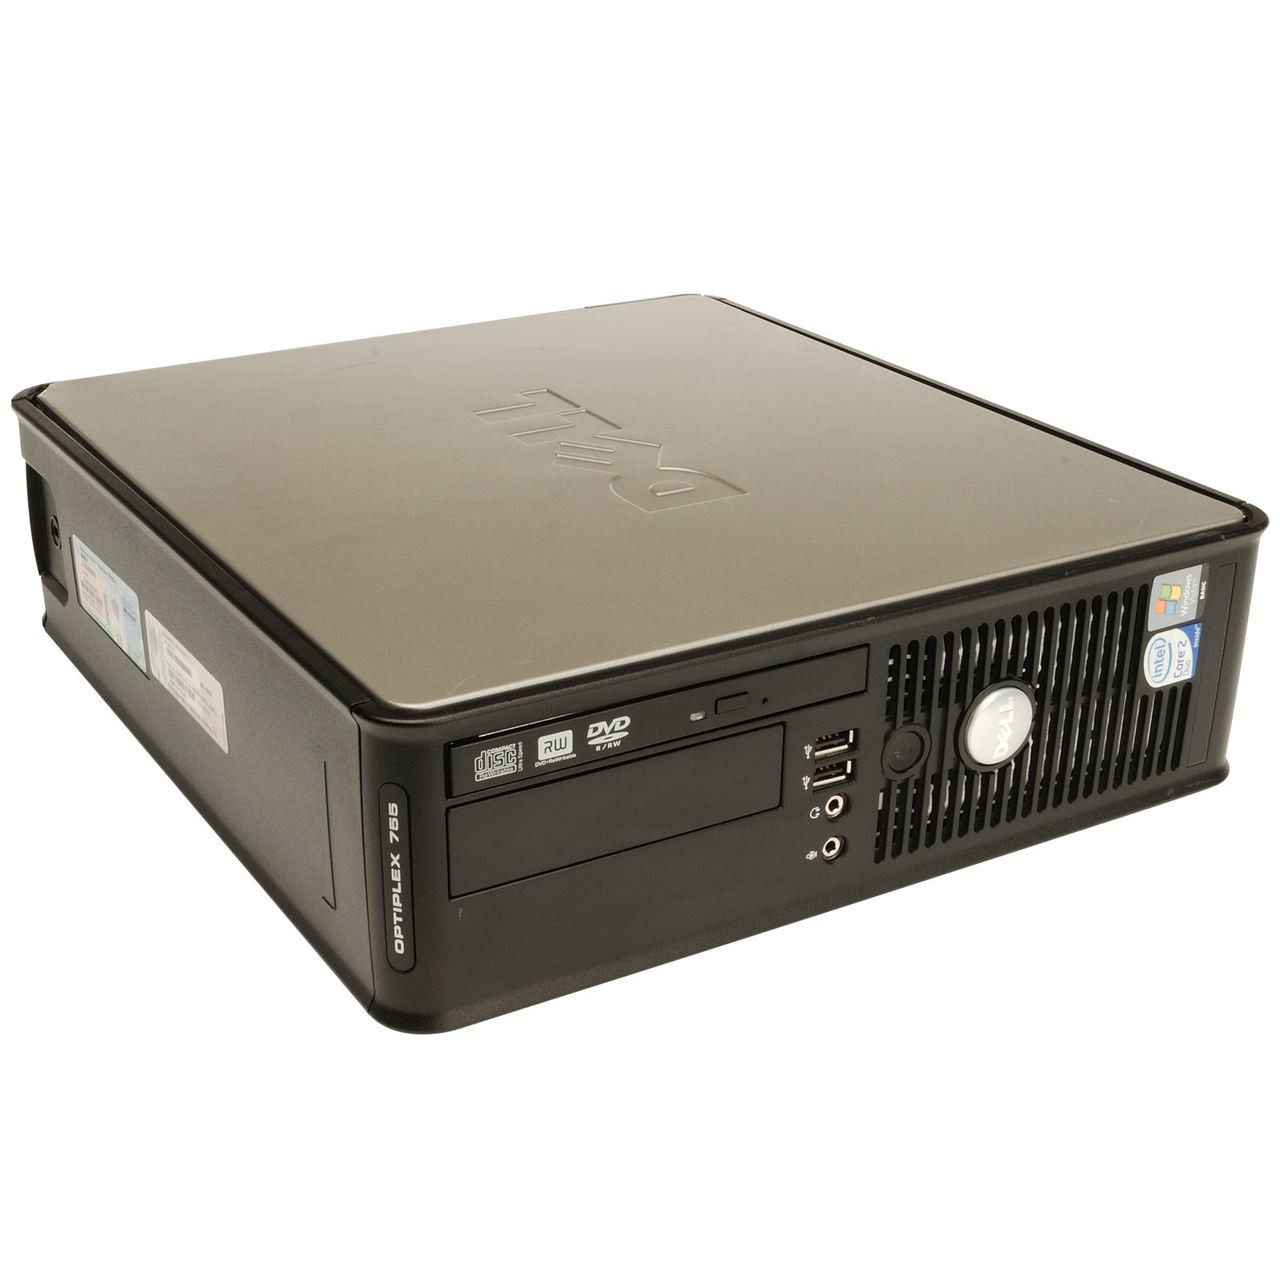 Dell Optiplex 755 SFF Intel Core 2 Duo 3.0GHz, 4GB Ram, 160GB HDD, DVD-RW, Windows 7 Pro 64 Desktop Computer